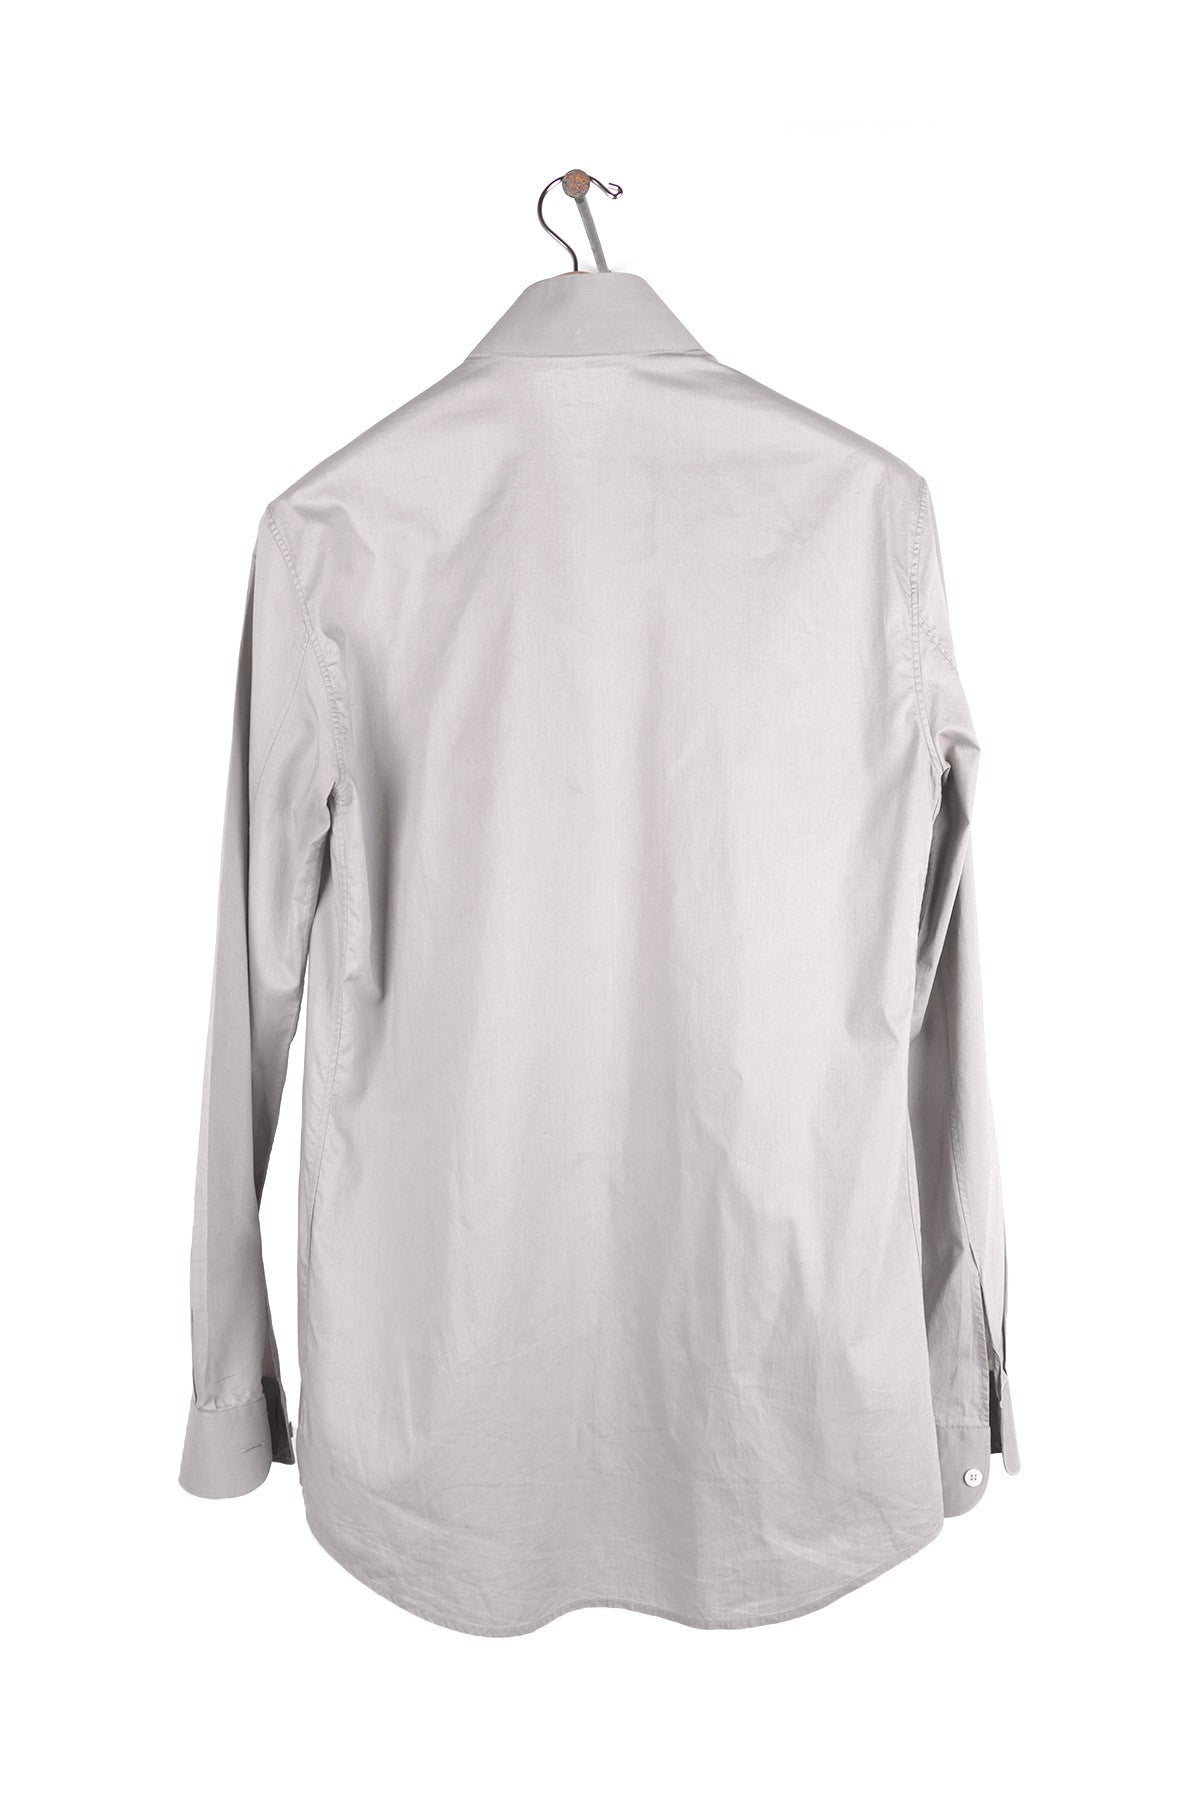 2002 S/S COTTON LONG-SLEEVE SHIRT WITH BOMBER STYLE DETACHABLE COLLAR